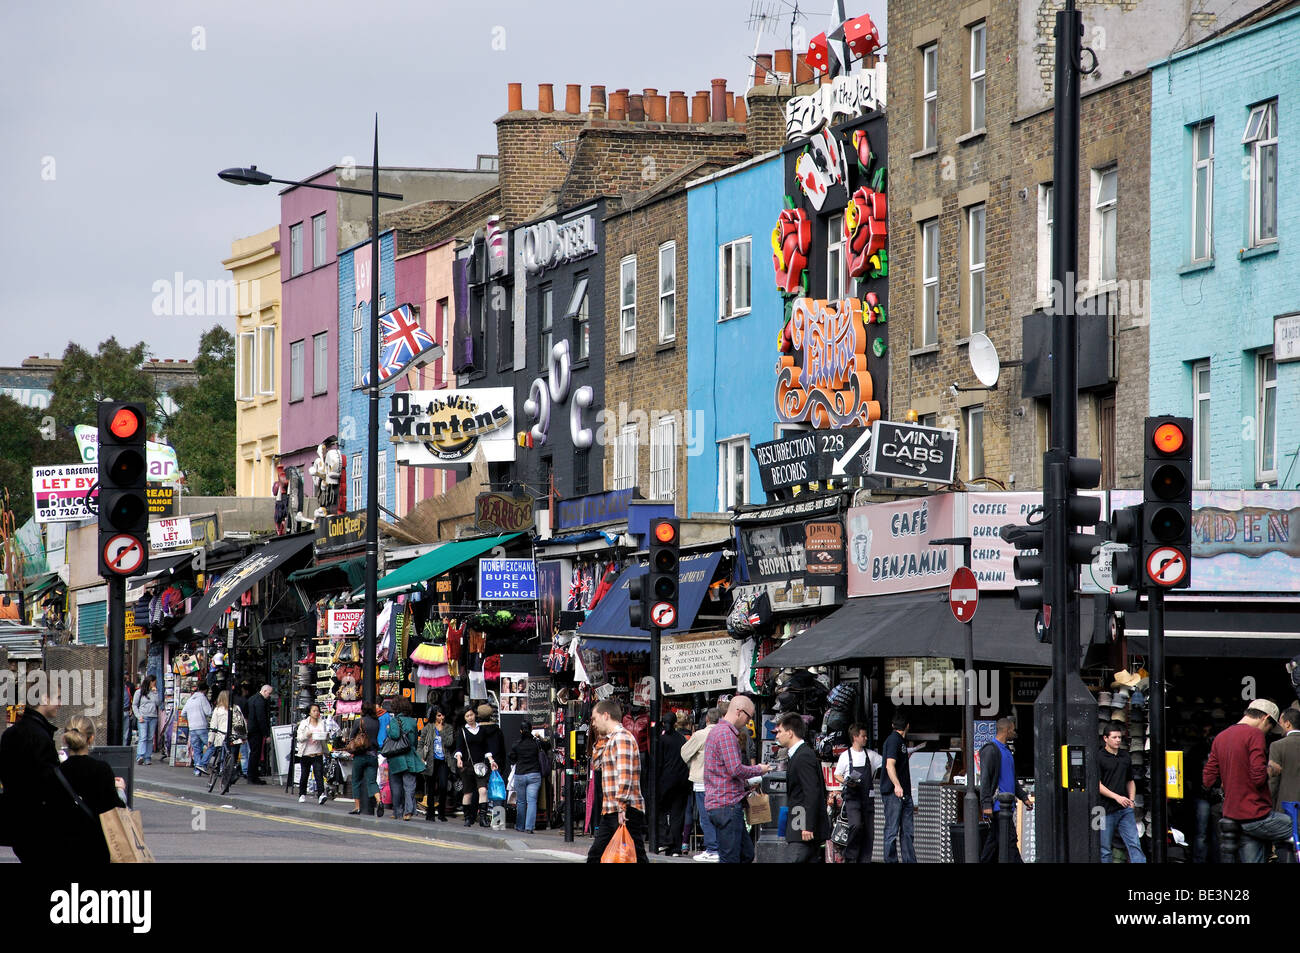 Decorated shopfronts, Camden High Street, Camden Town, London Borough of Camden, London, England, United Kingdom - Stock Image